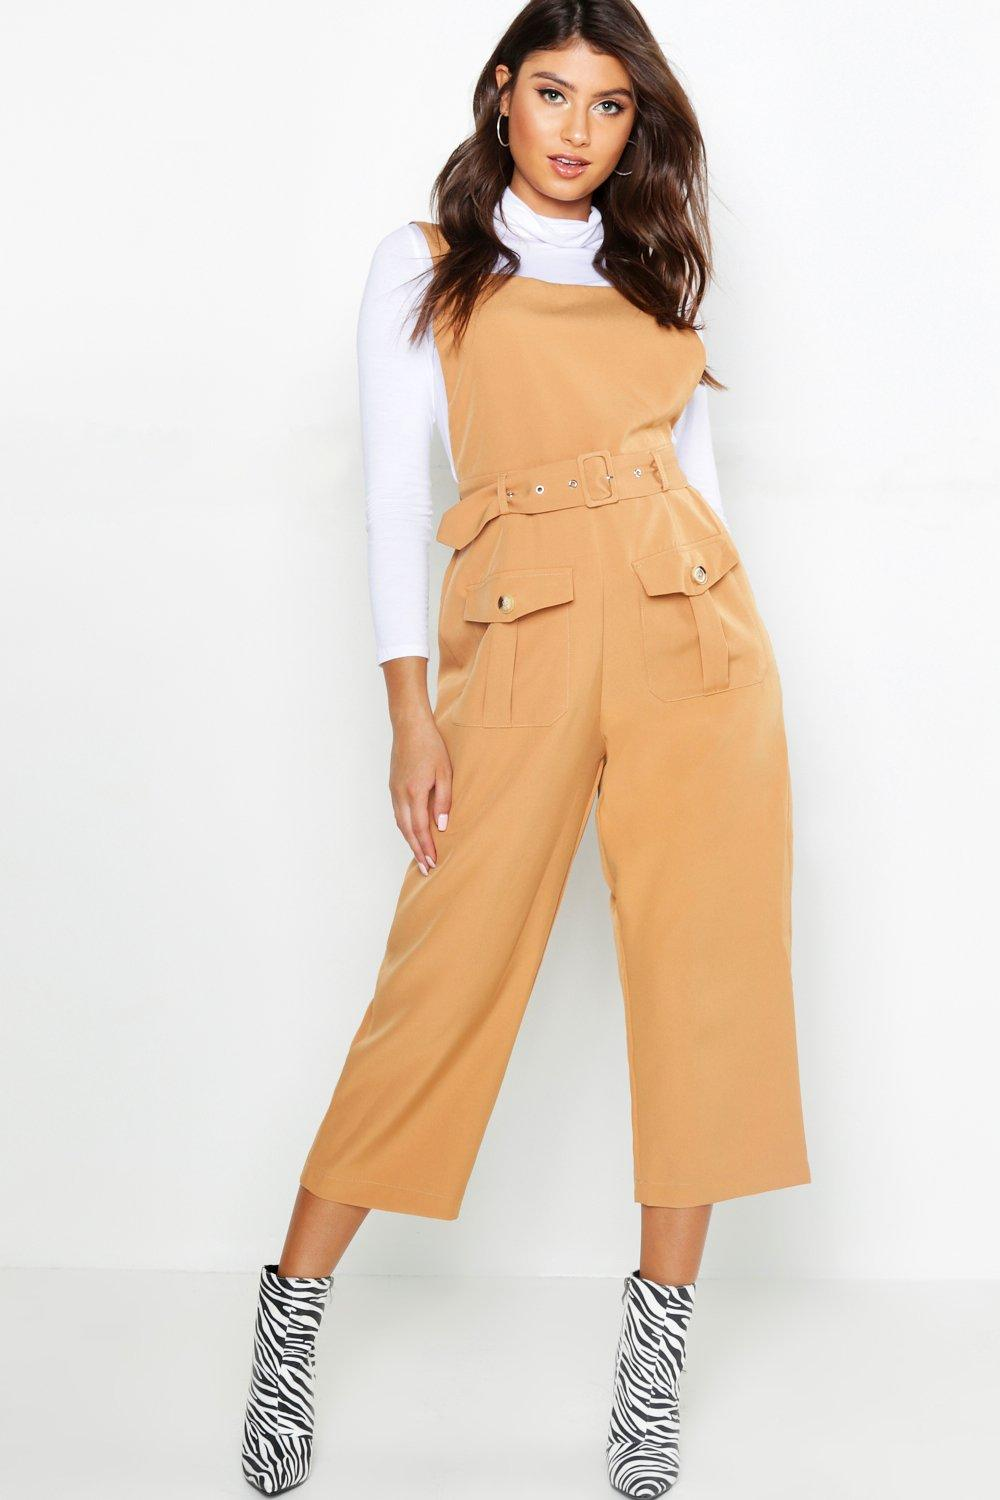 71ccd67be1e3 Belted Utility Cargo Pocket Pinafore Jumpsuit. Hover to zoom